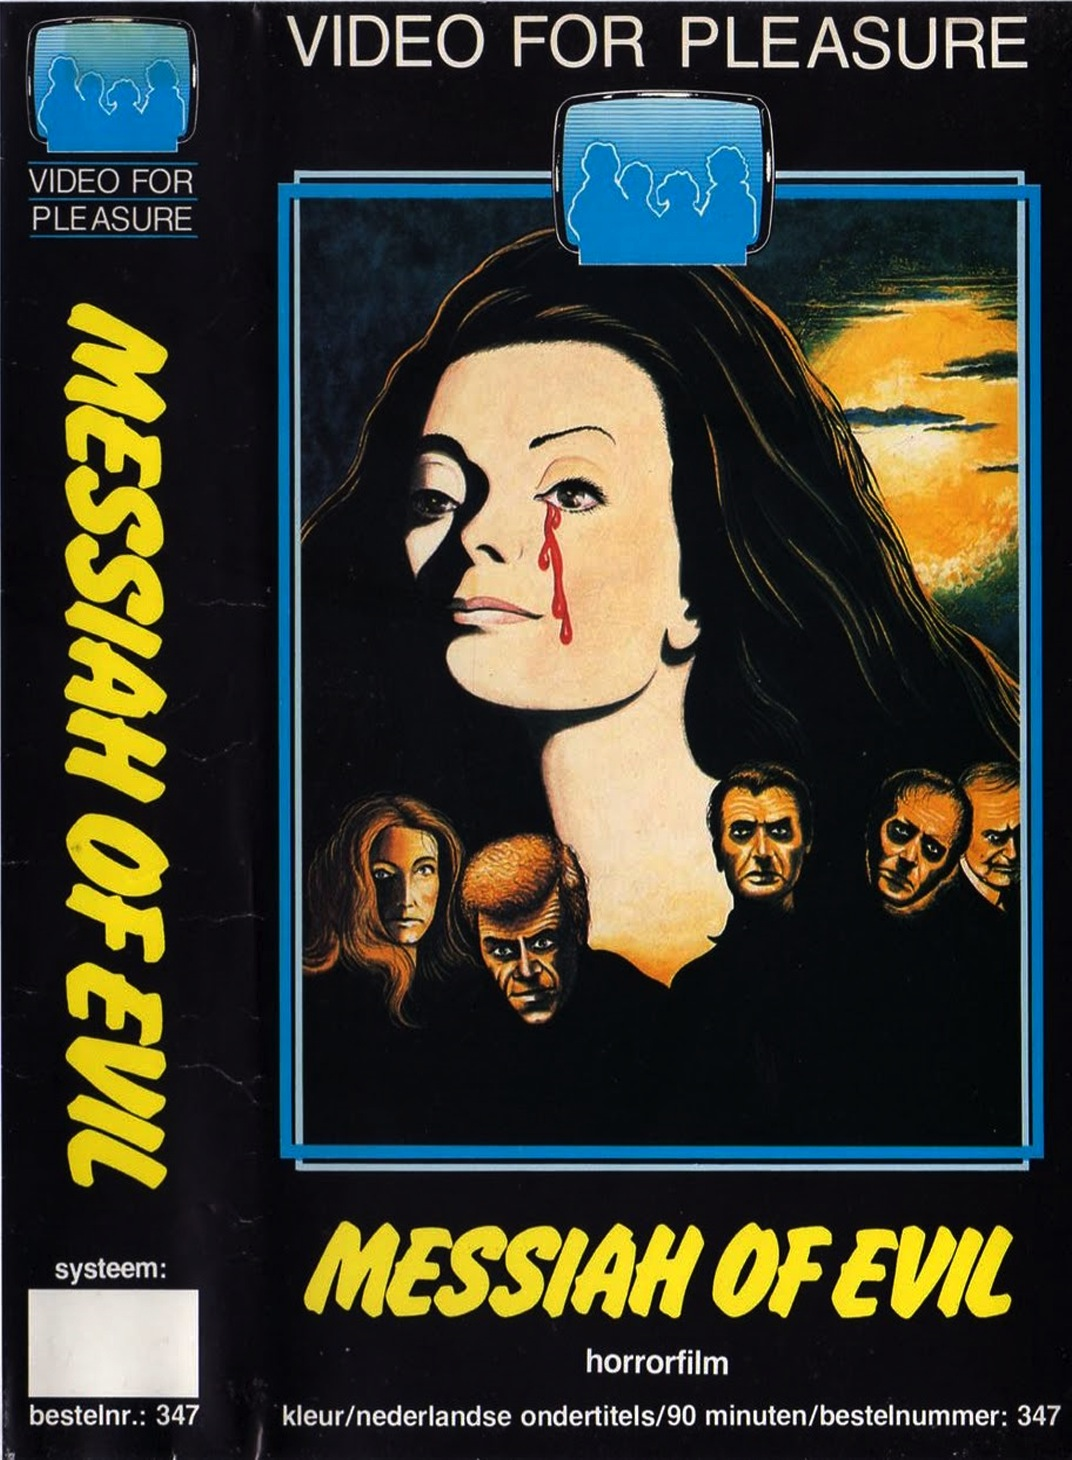 Messiah Of Evil-1973 (With images)